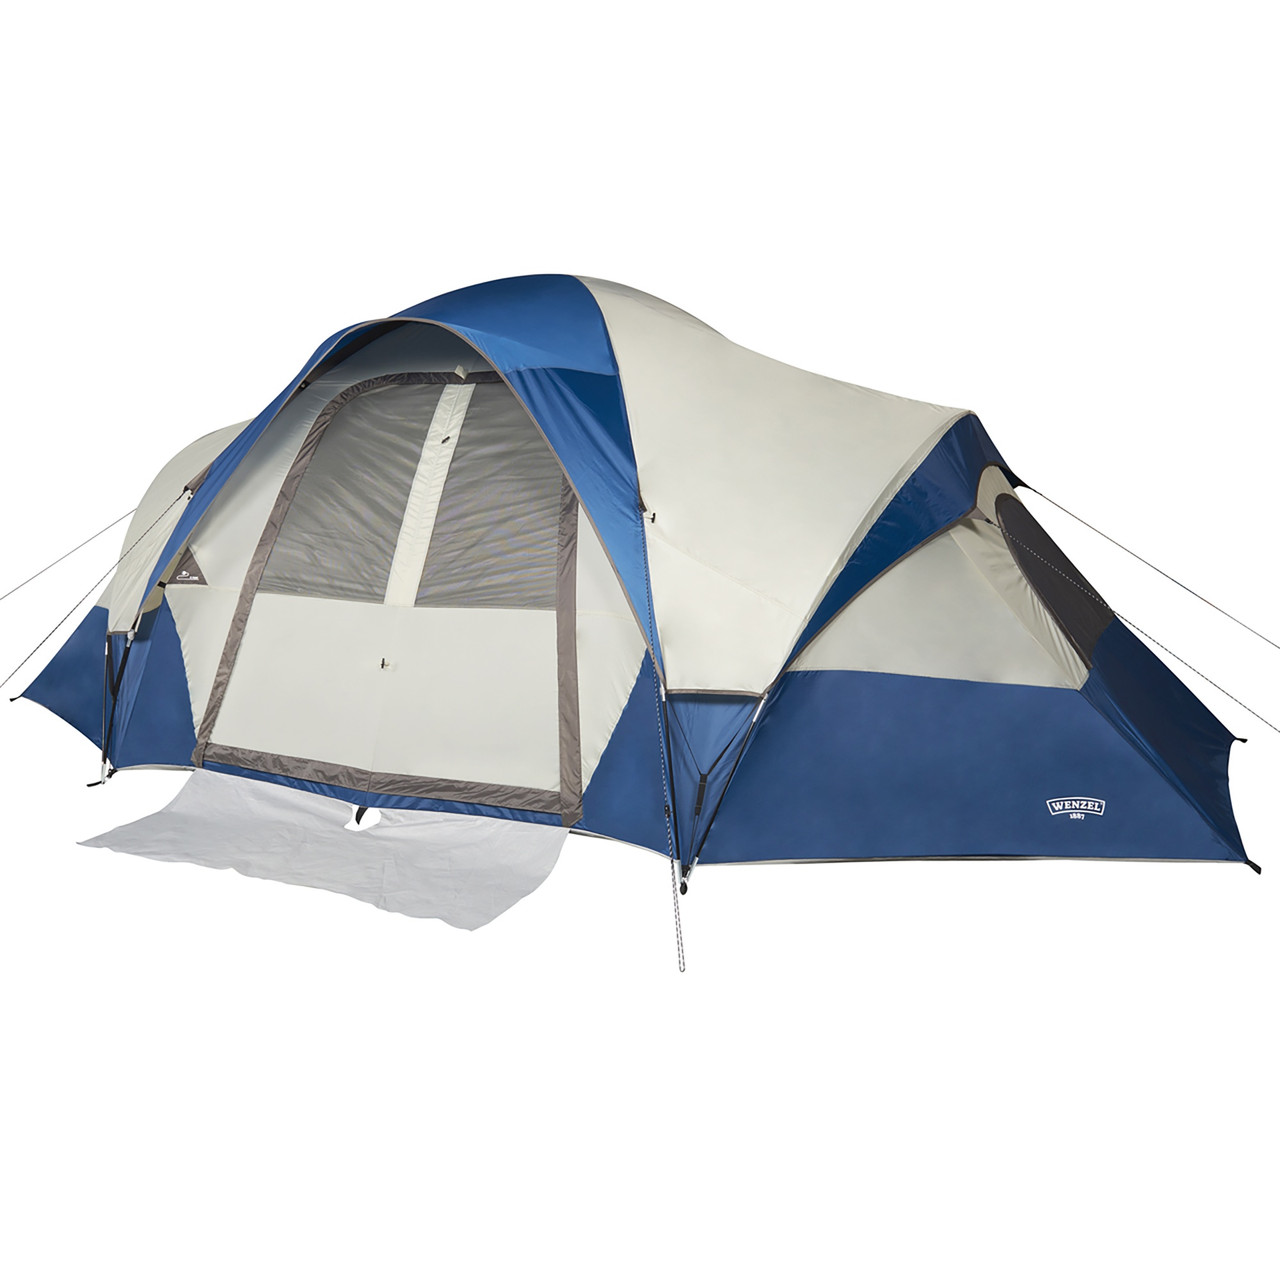 Wenzel Pinyon 10 Person Dome Tent, blue/white, front view, fly attached